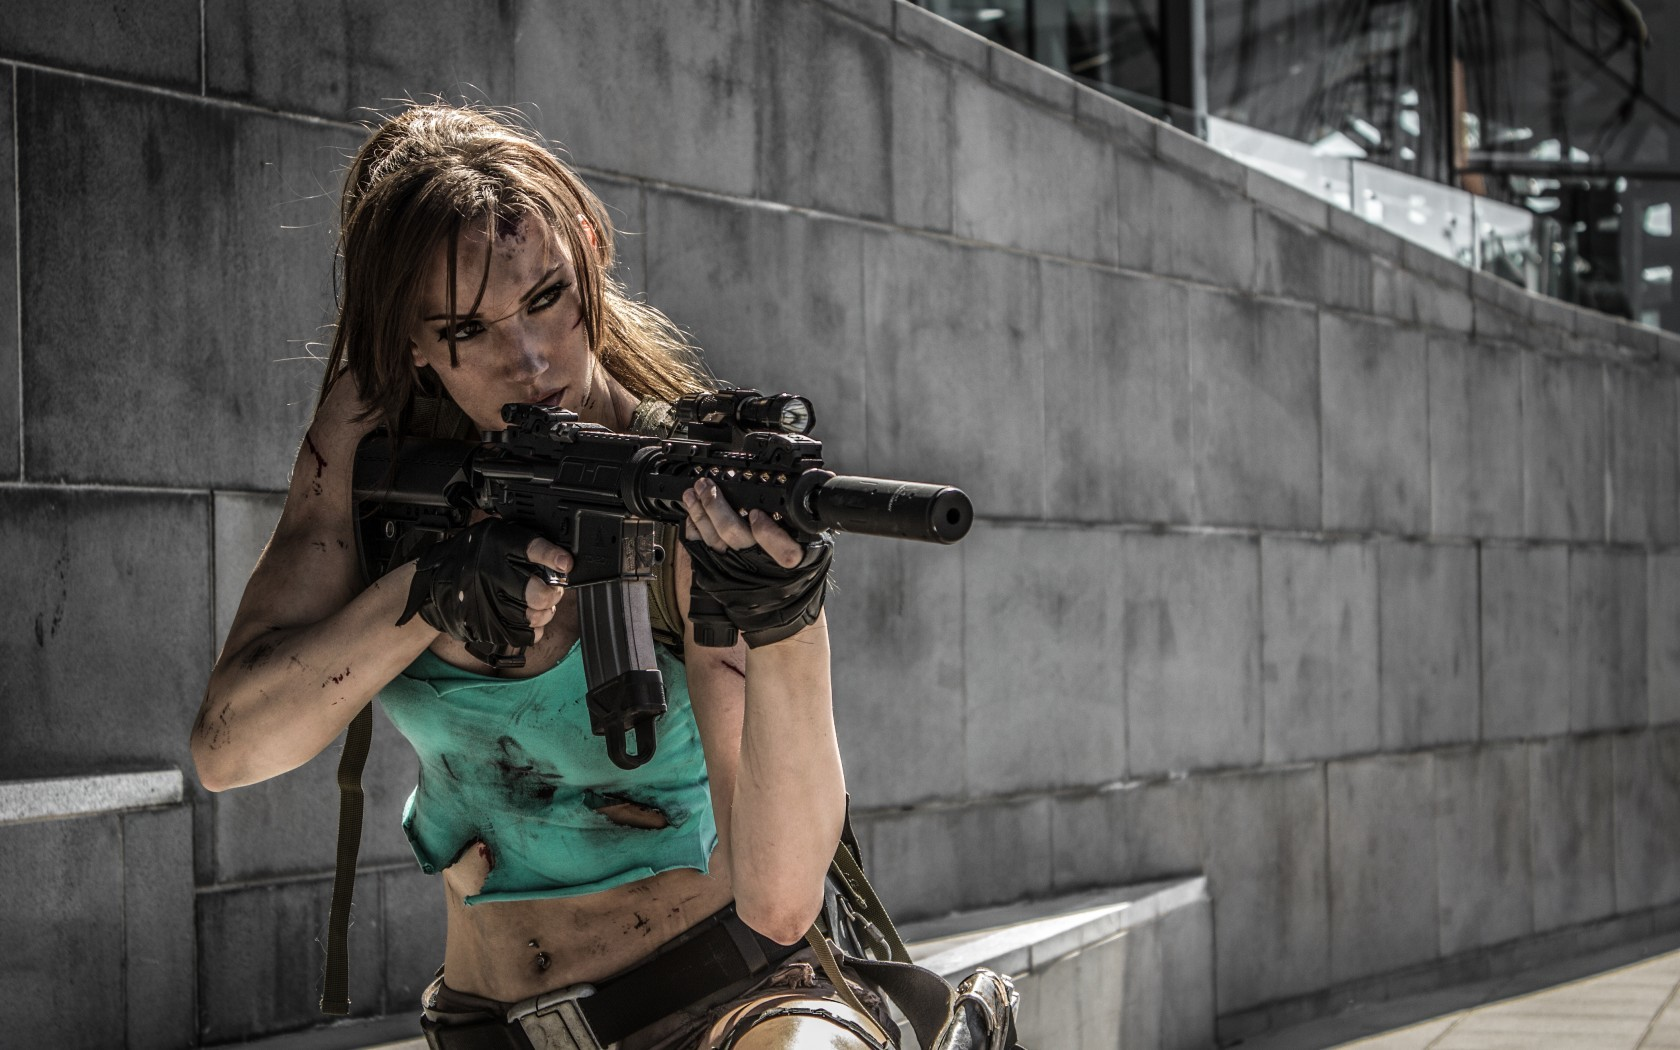 42954 download wallpaper Girls, People, War screensavers and pictures for free